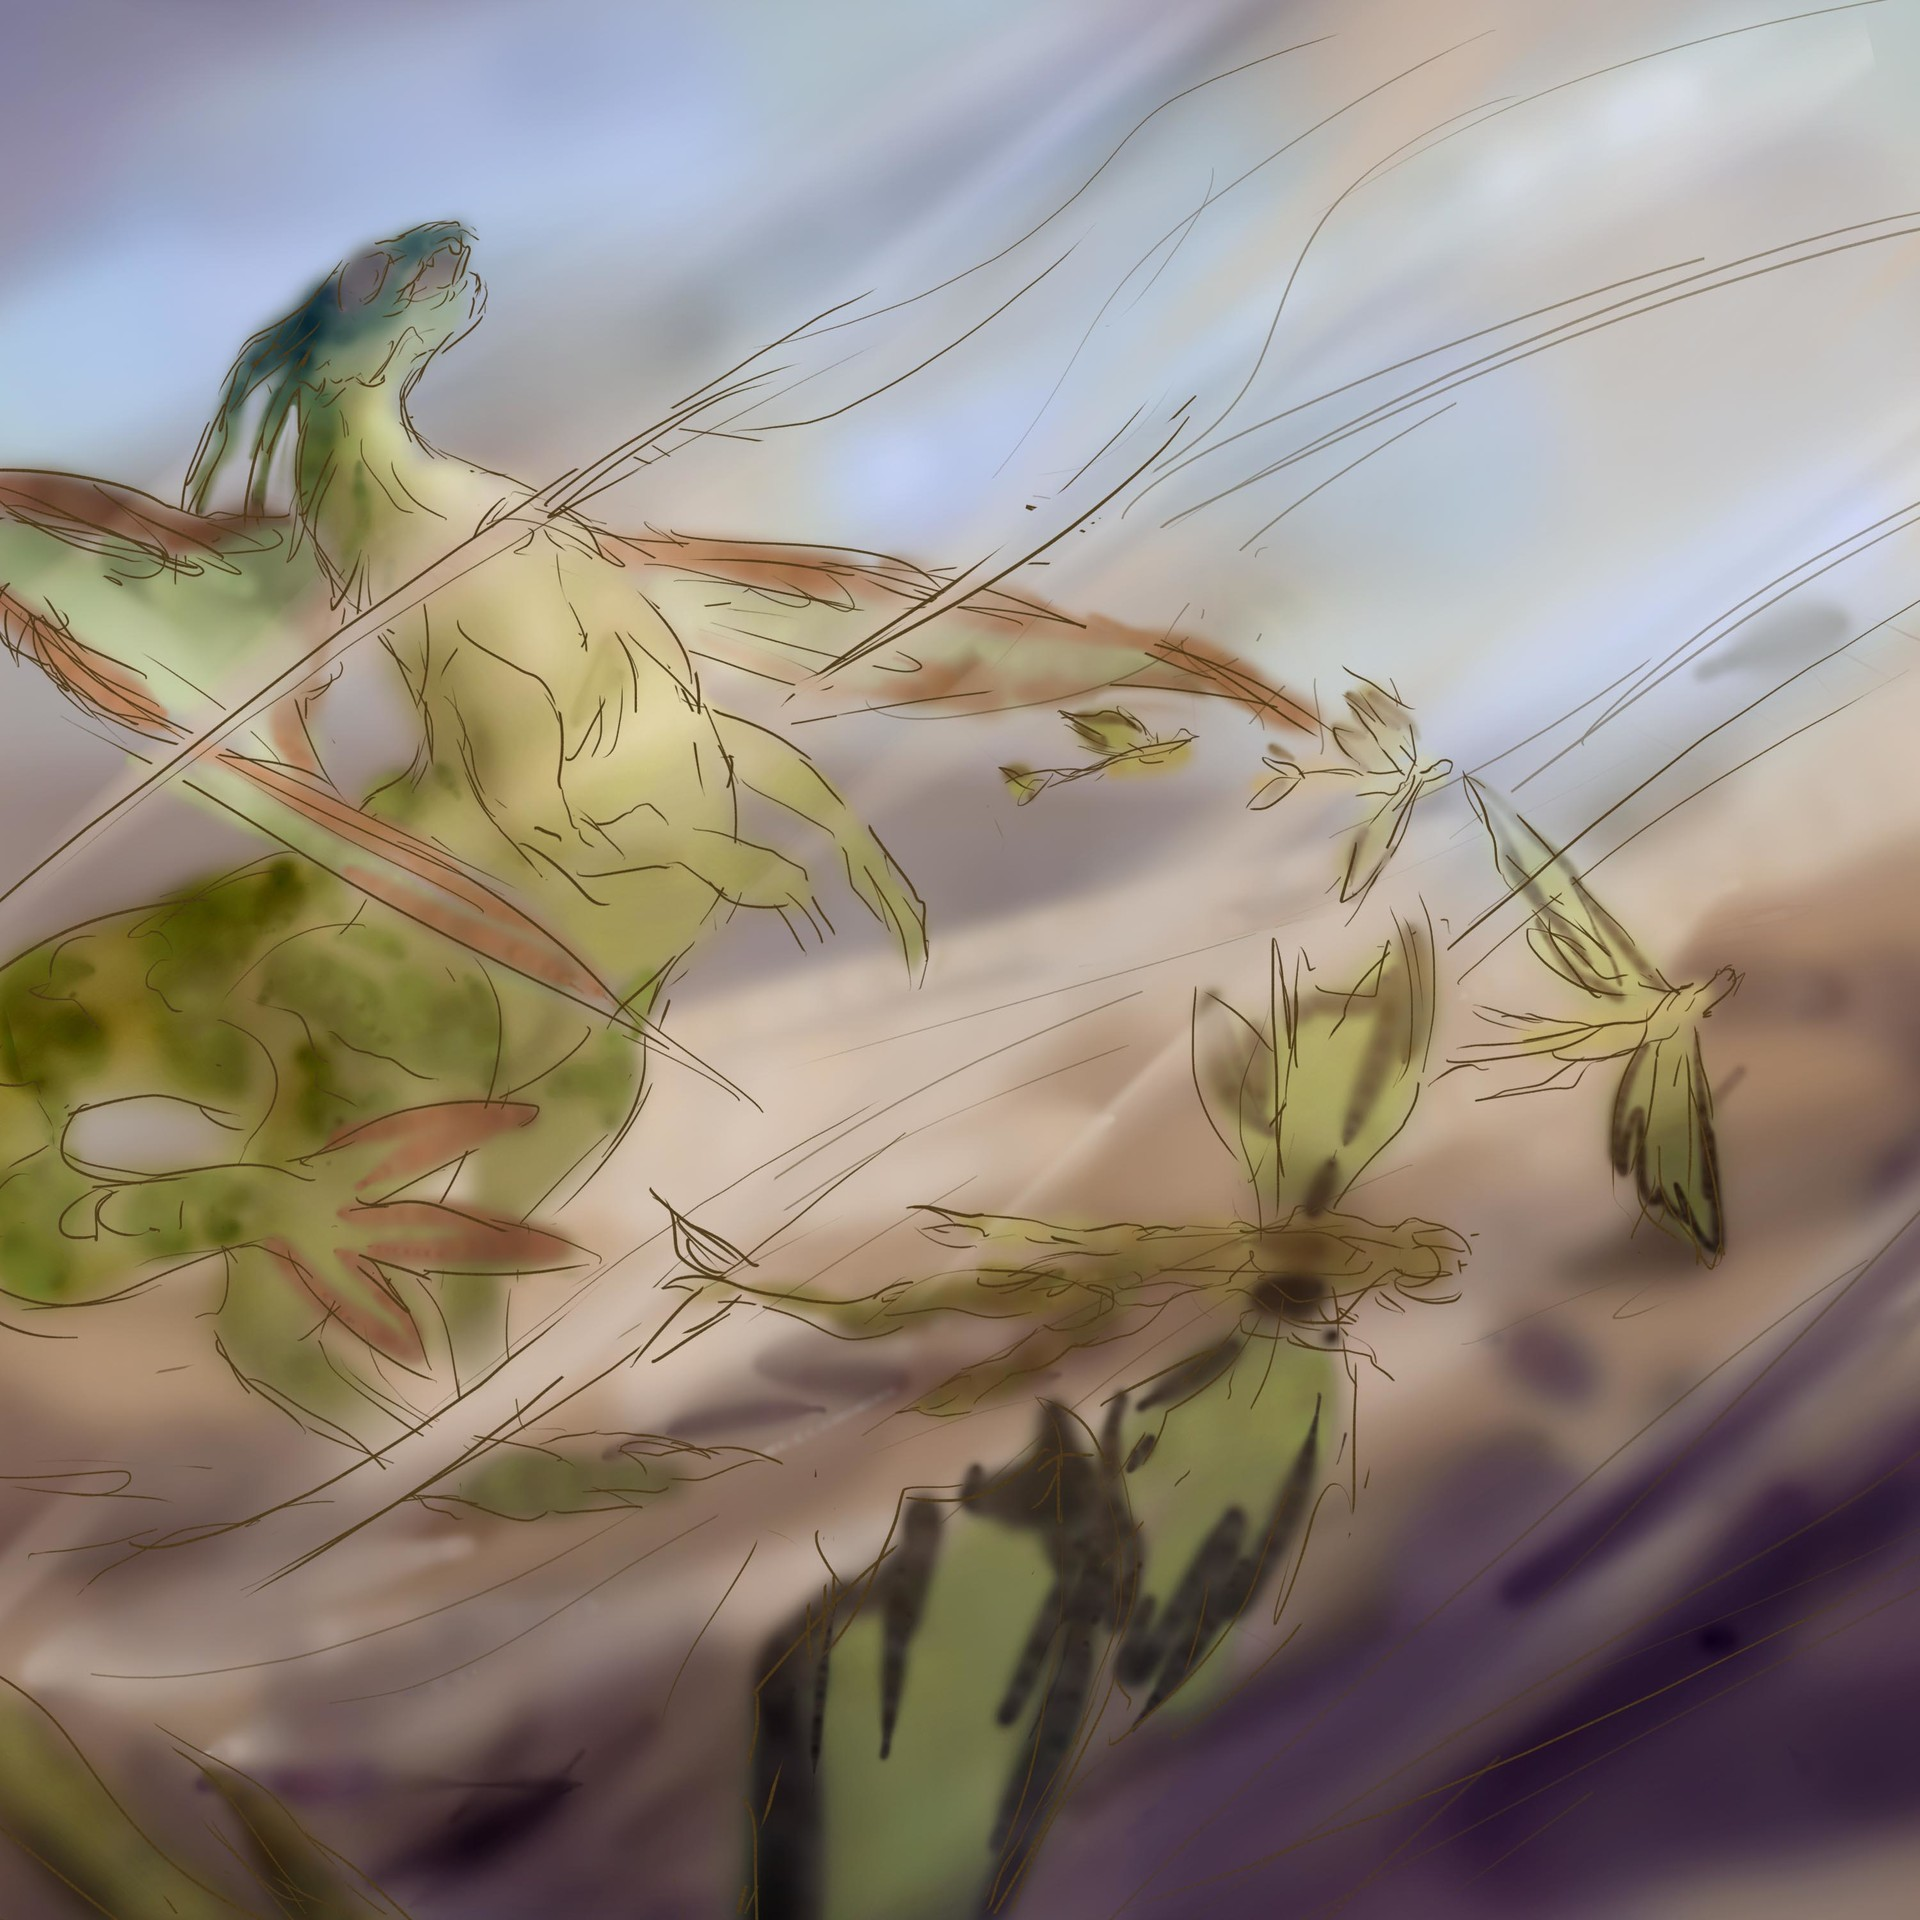 Sketch 3 - Flygon unleashing a sandstorm, dispatching a group of Vibrava.